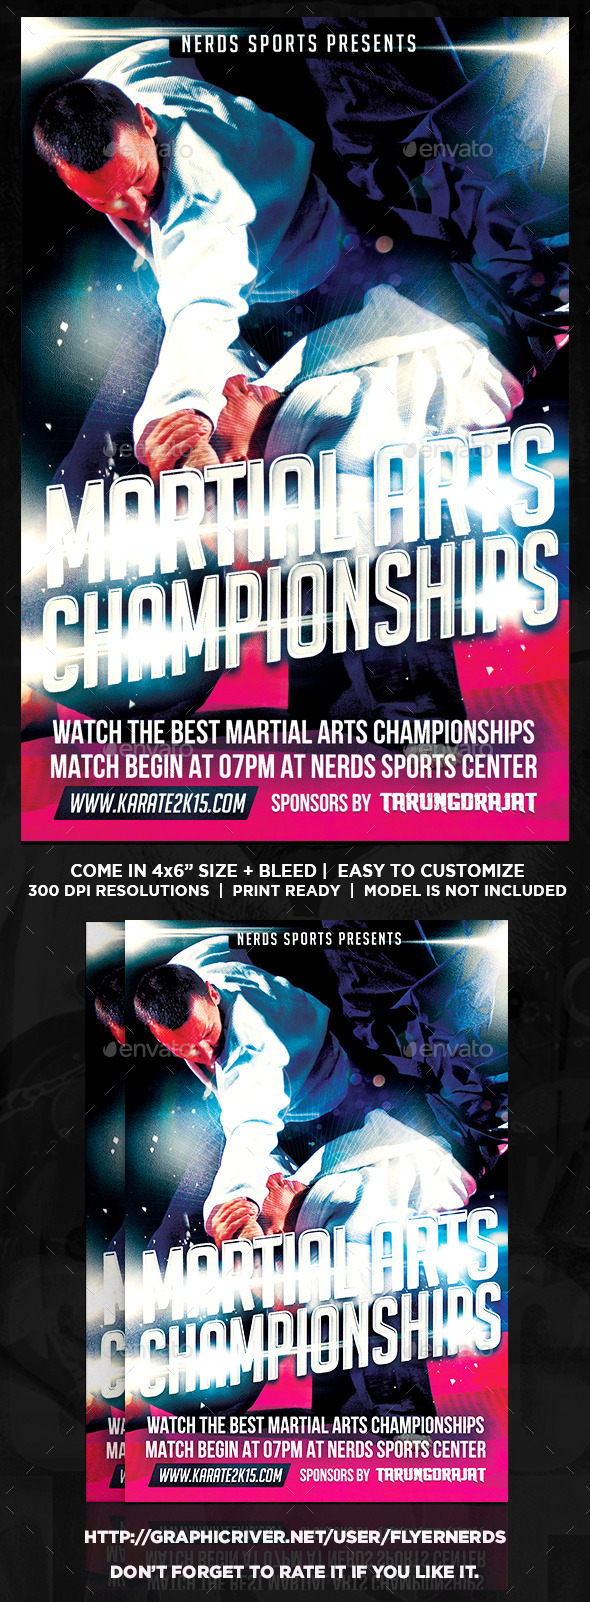 Martial Arts 2K15 Championships Sports Flyer - Sports Events